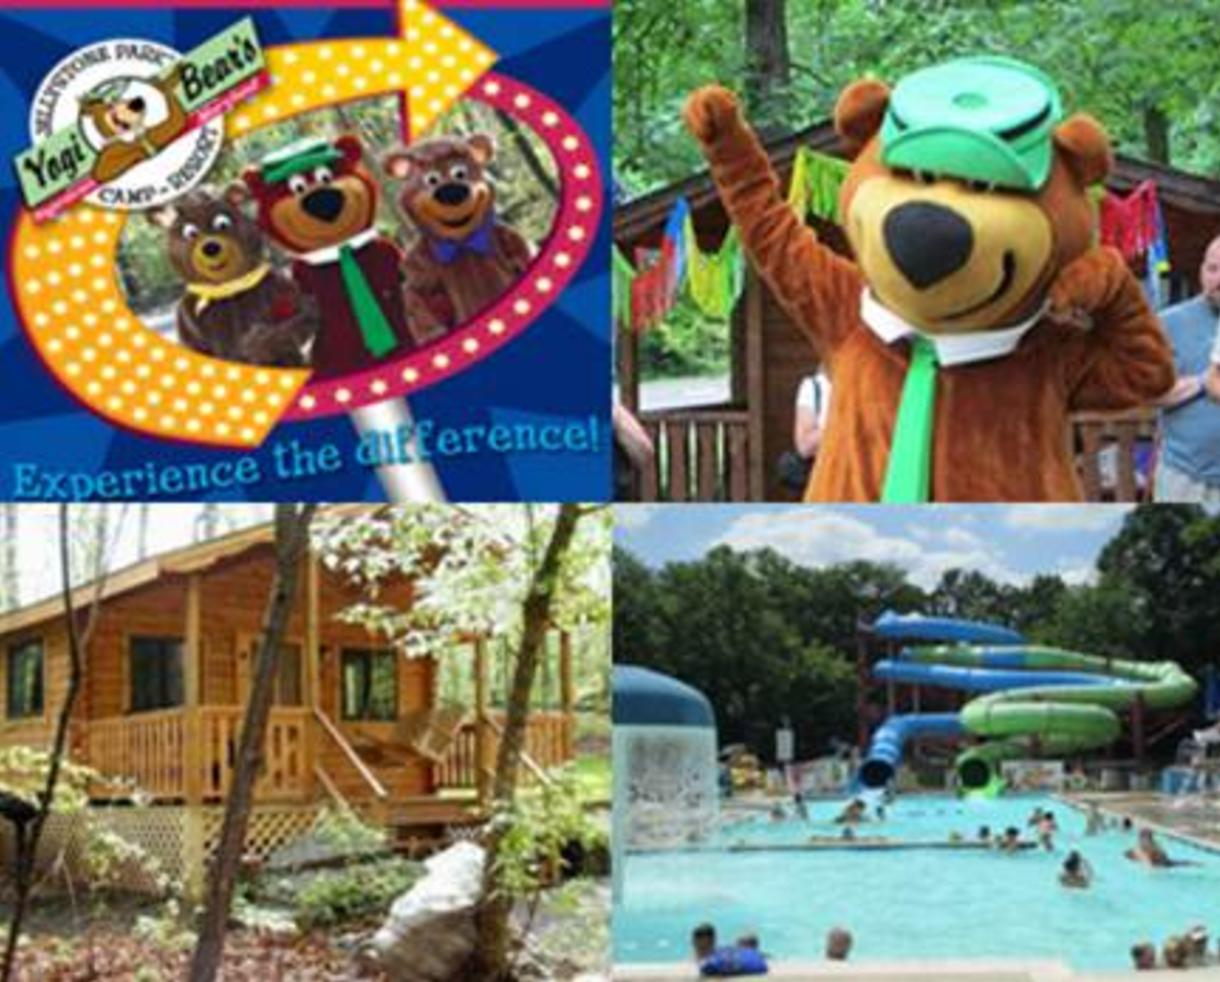 $86 for 2-Night Get-Away at Yogi Bear's Jellystone Park - Hagerstown, MD (50% Off!)